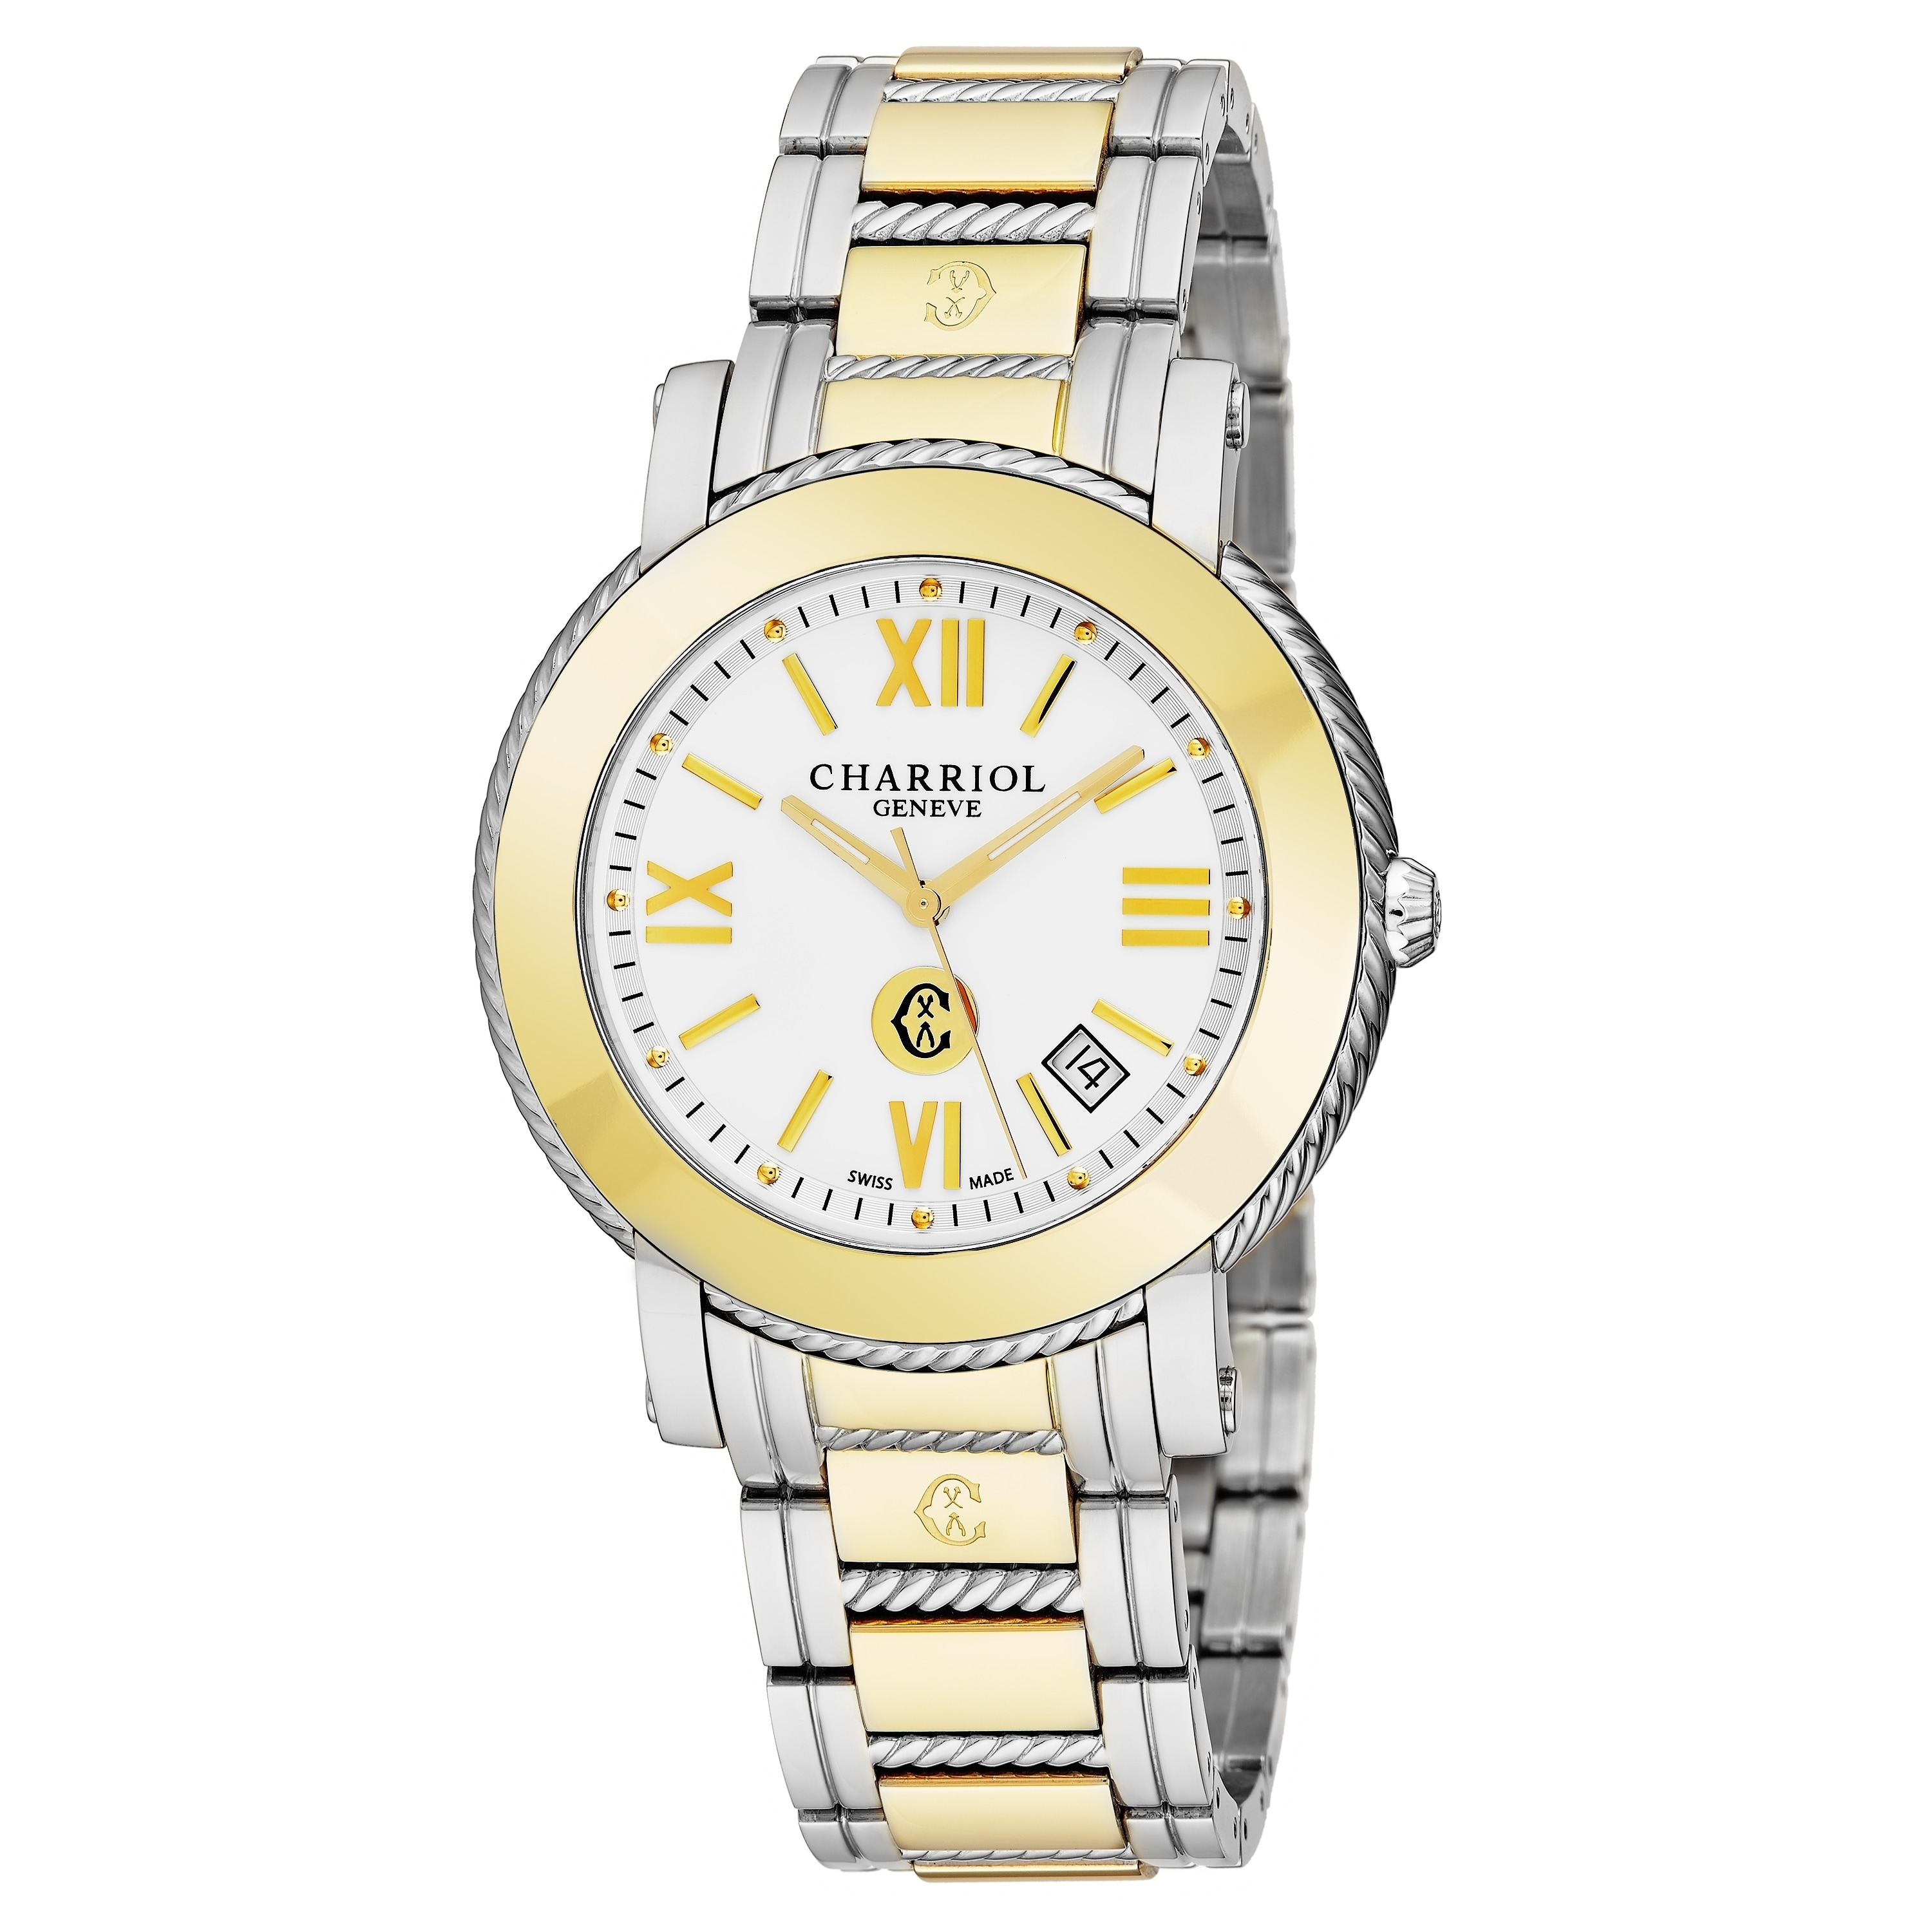 8f8d3d2bf91 Charriol Men s P42SY1.P42SY1.007  Parisi  White Dial Two Tone Stainless  Steel Quartz Watch